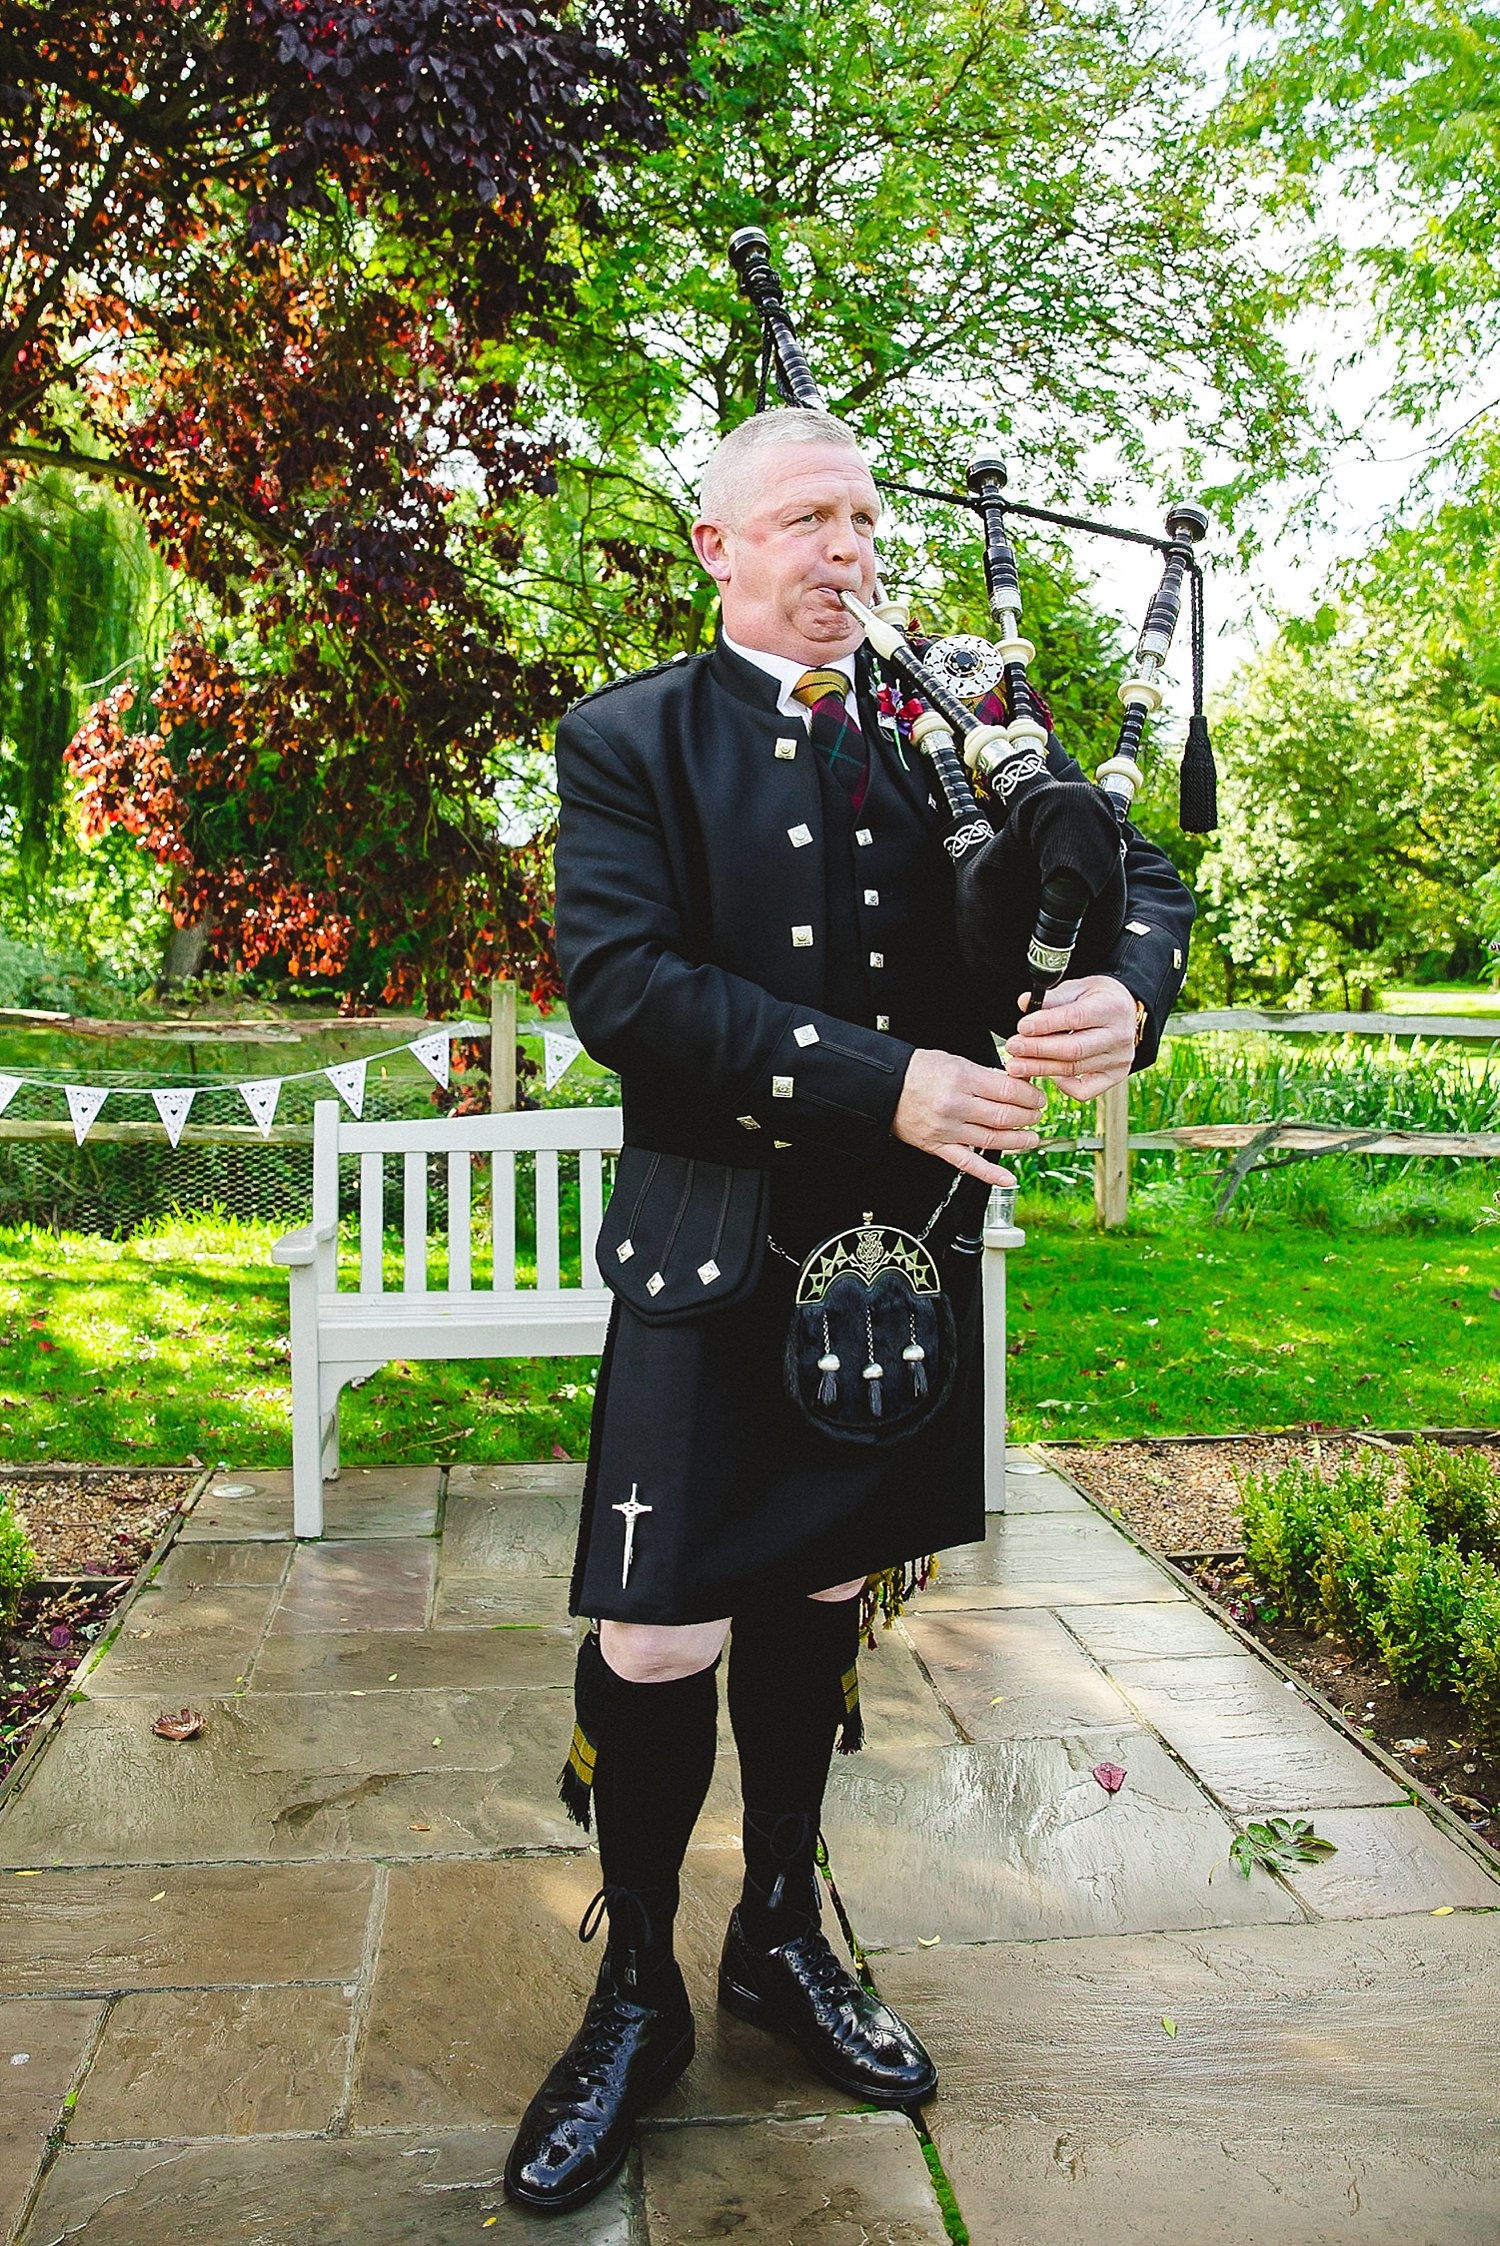 Houchins Wedding Photographer - Scottish Bag Piper